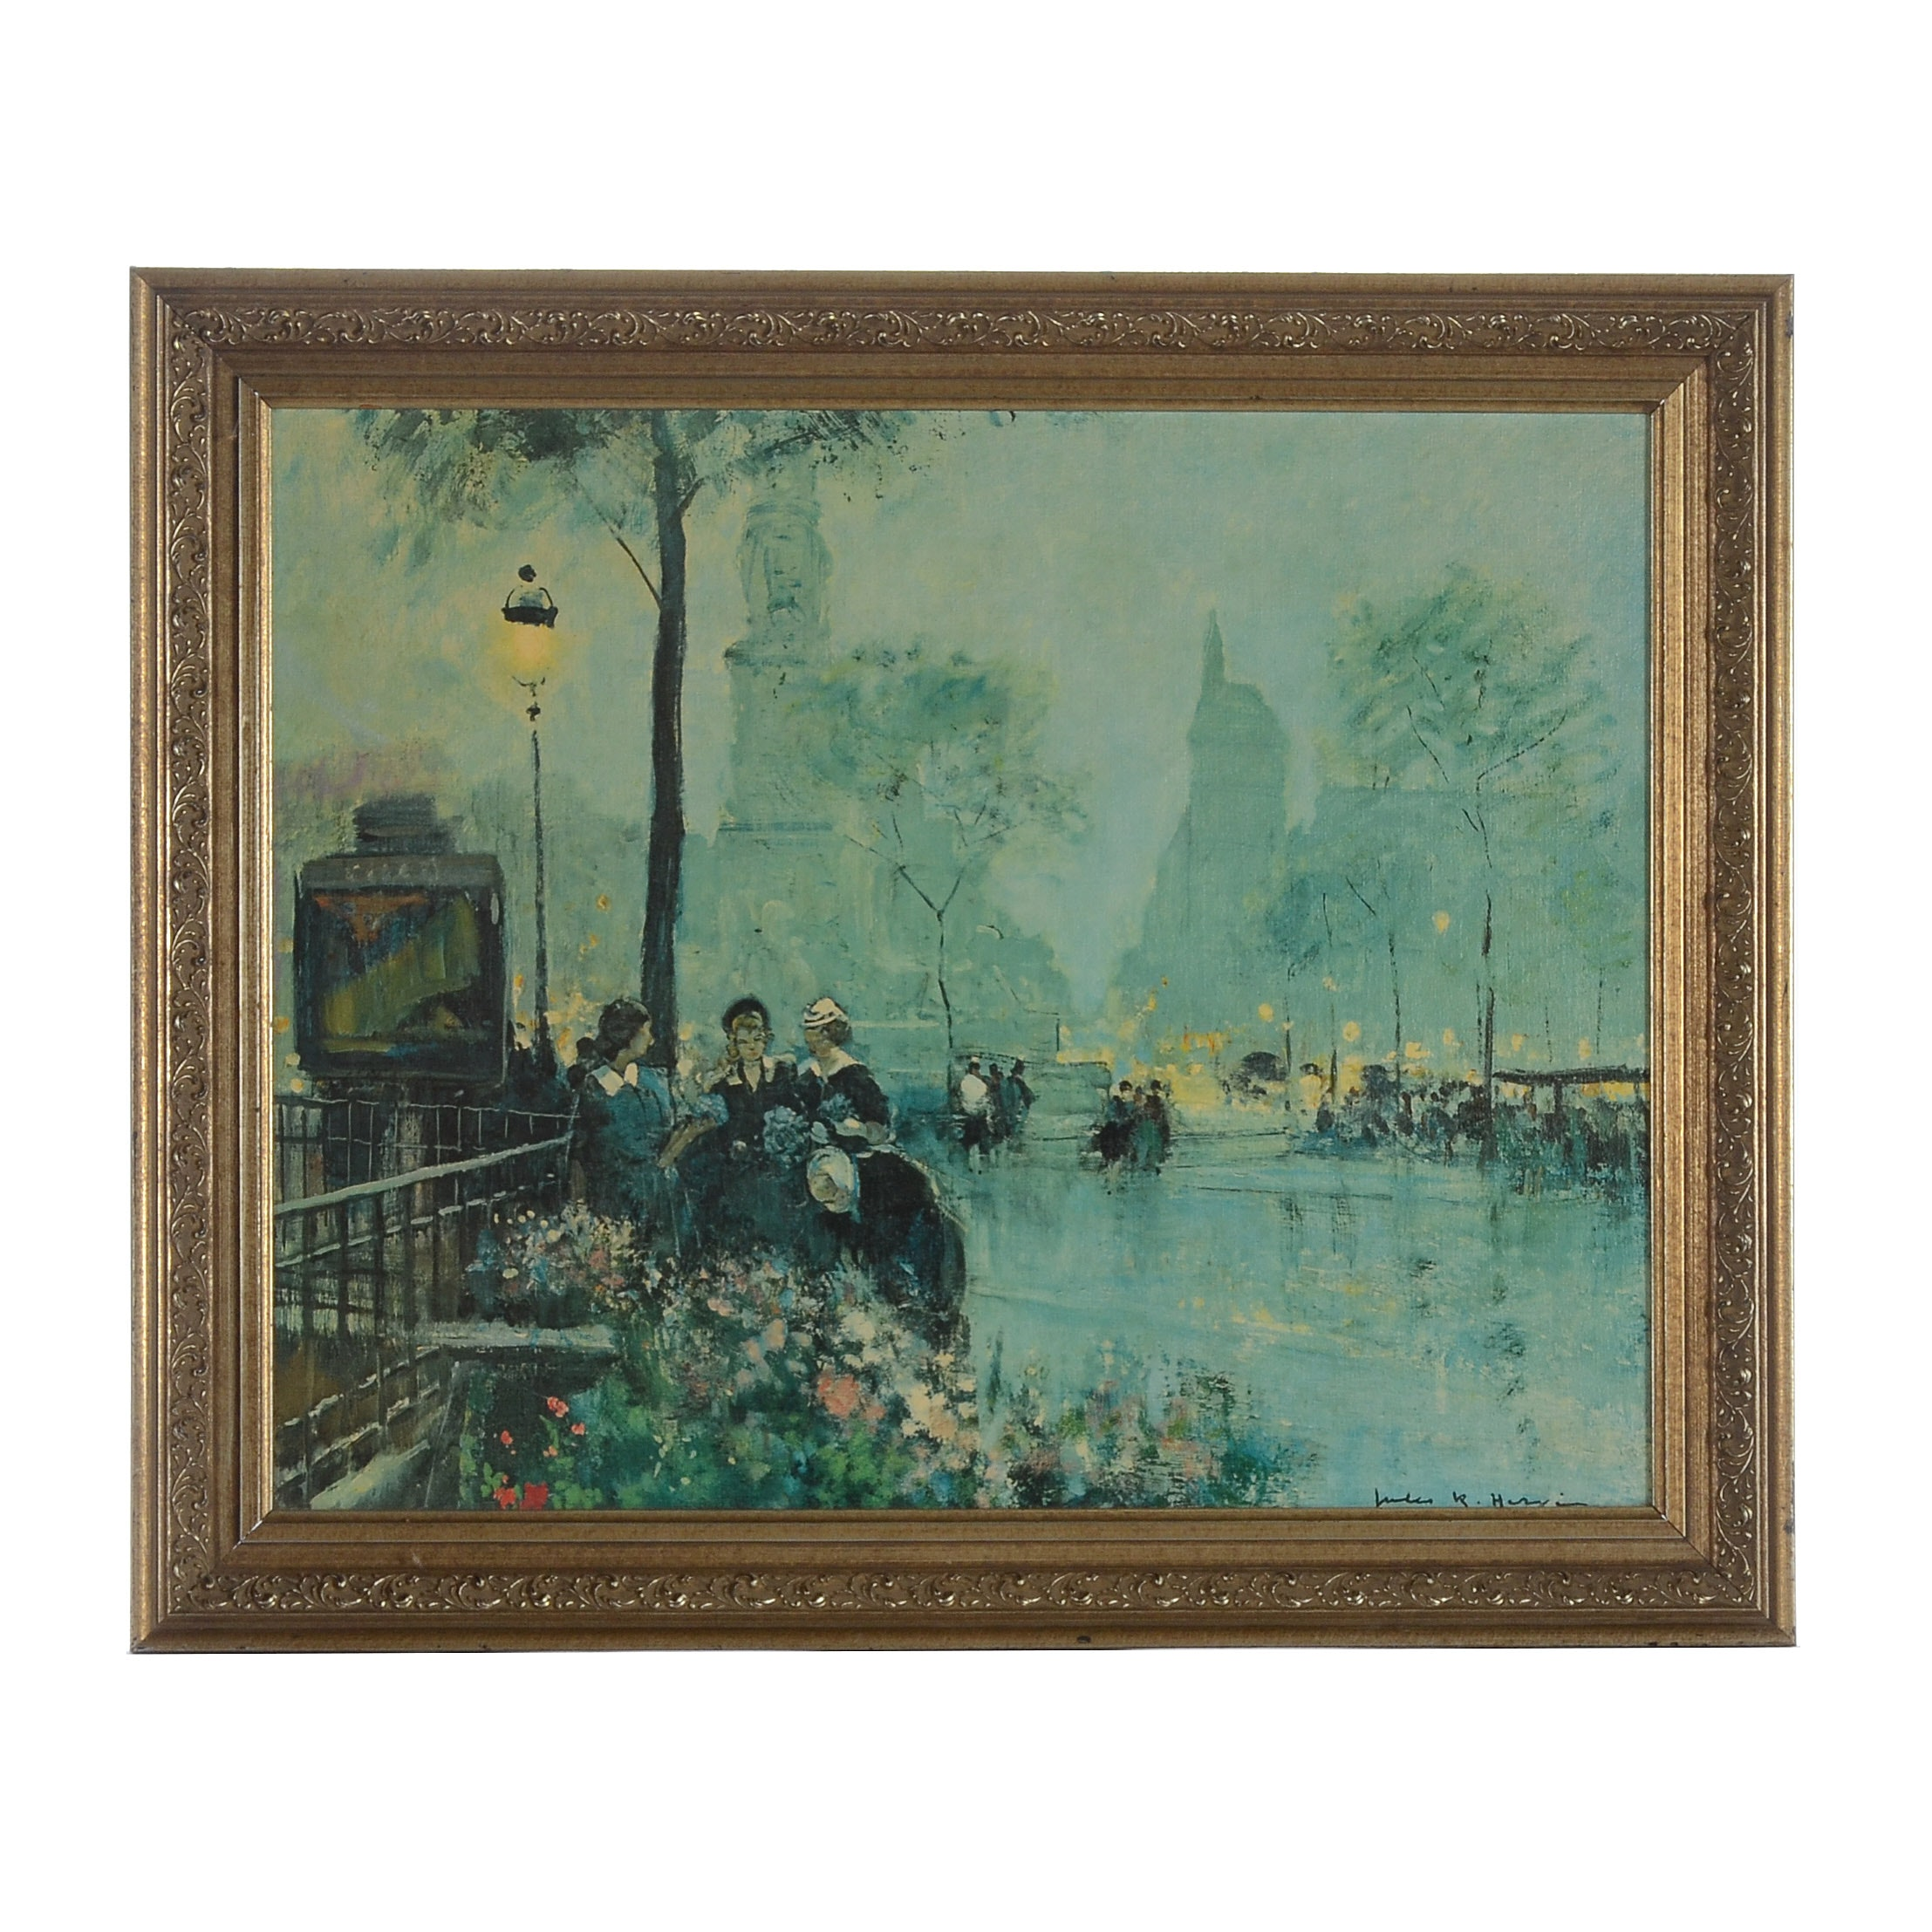 Large Offset Lithograph on Canvas of a Street Scene